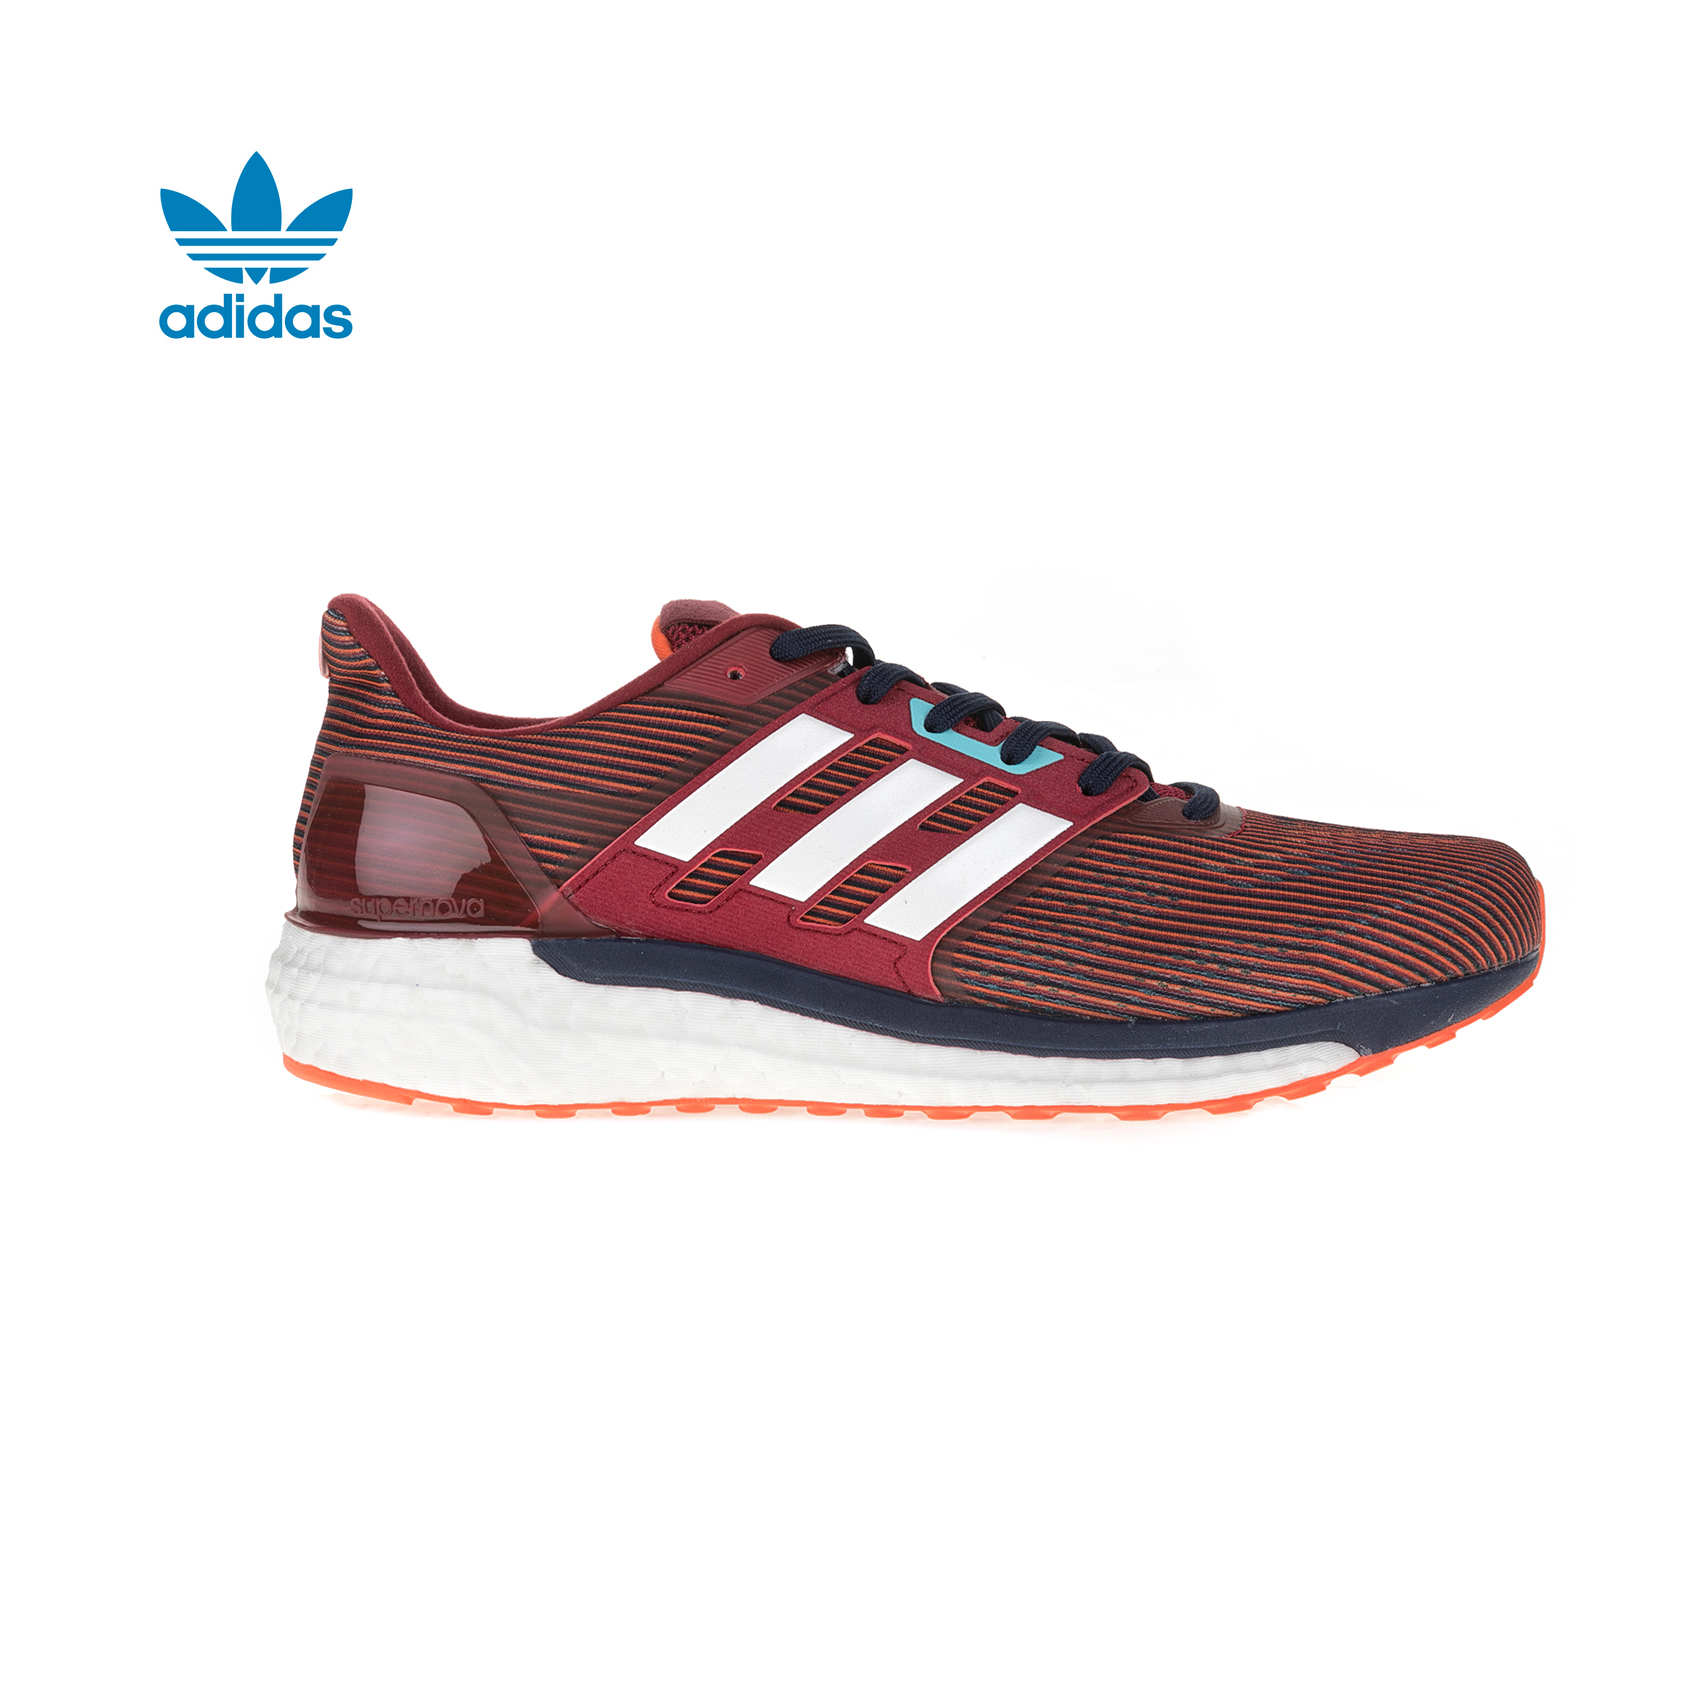 ADIDAS – BB6036 supernova m RUNNING ΥΠΟΔΗΜΑ